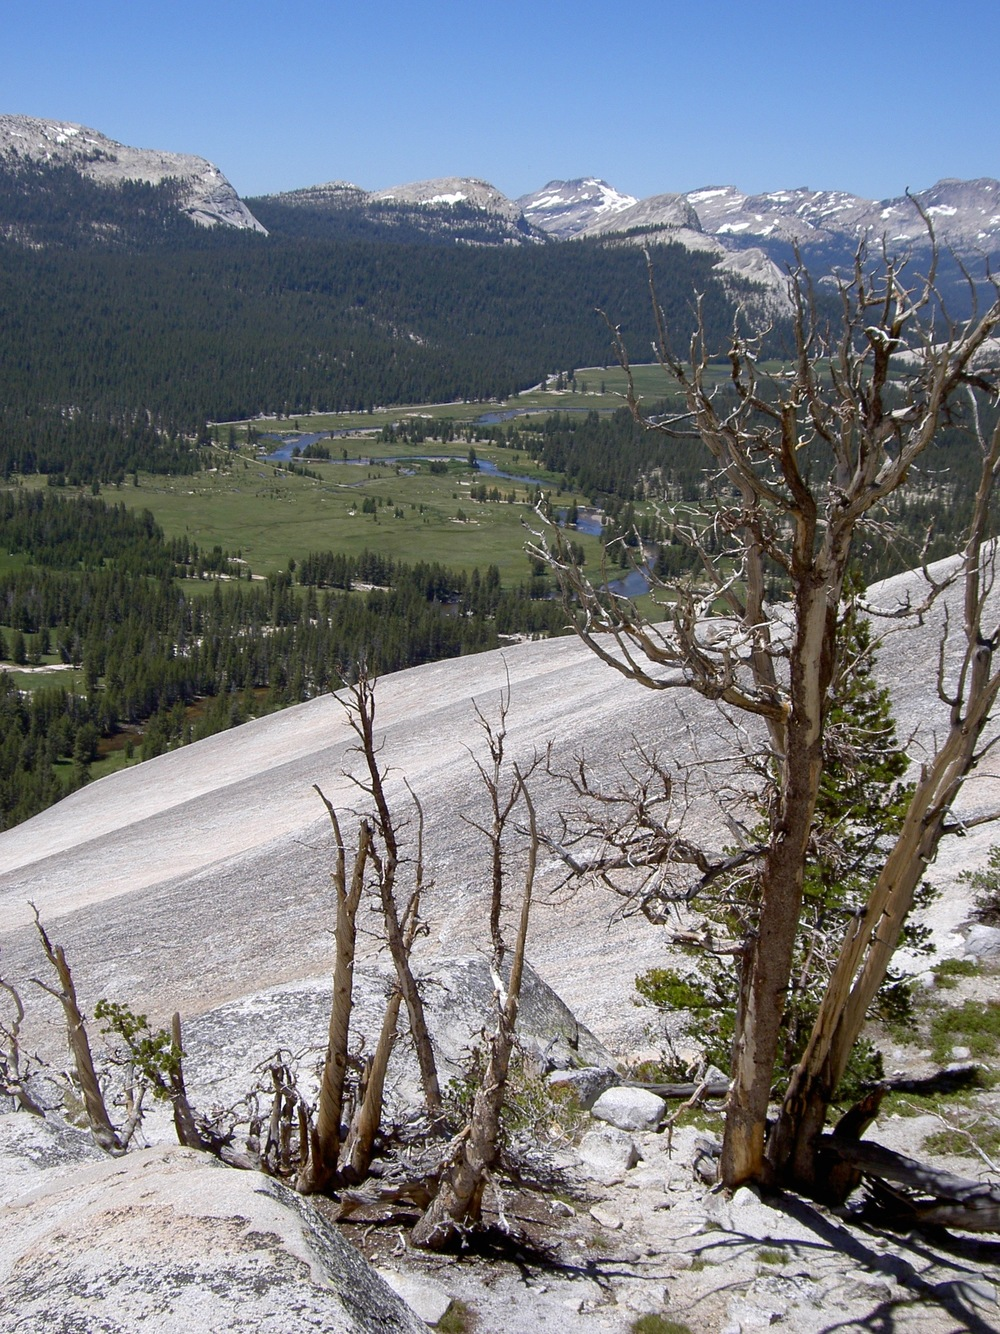 Tuolumne Meadow viewed from Lembert Dome.